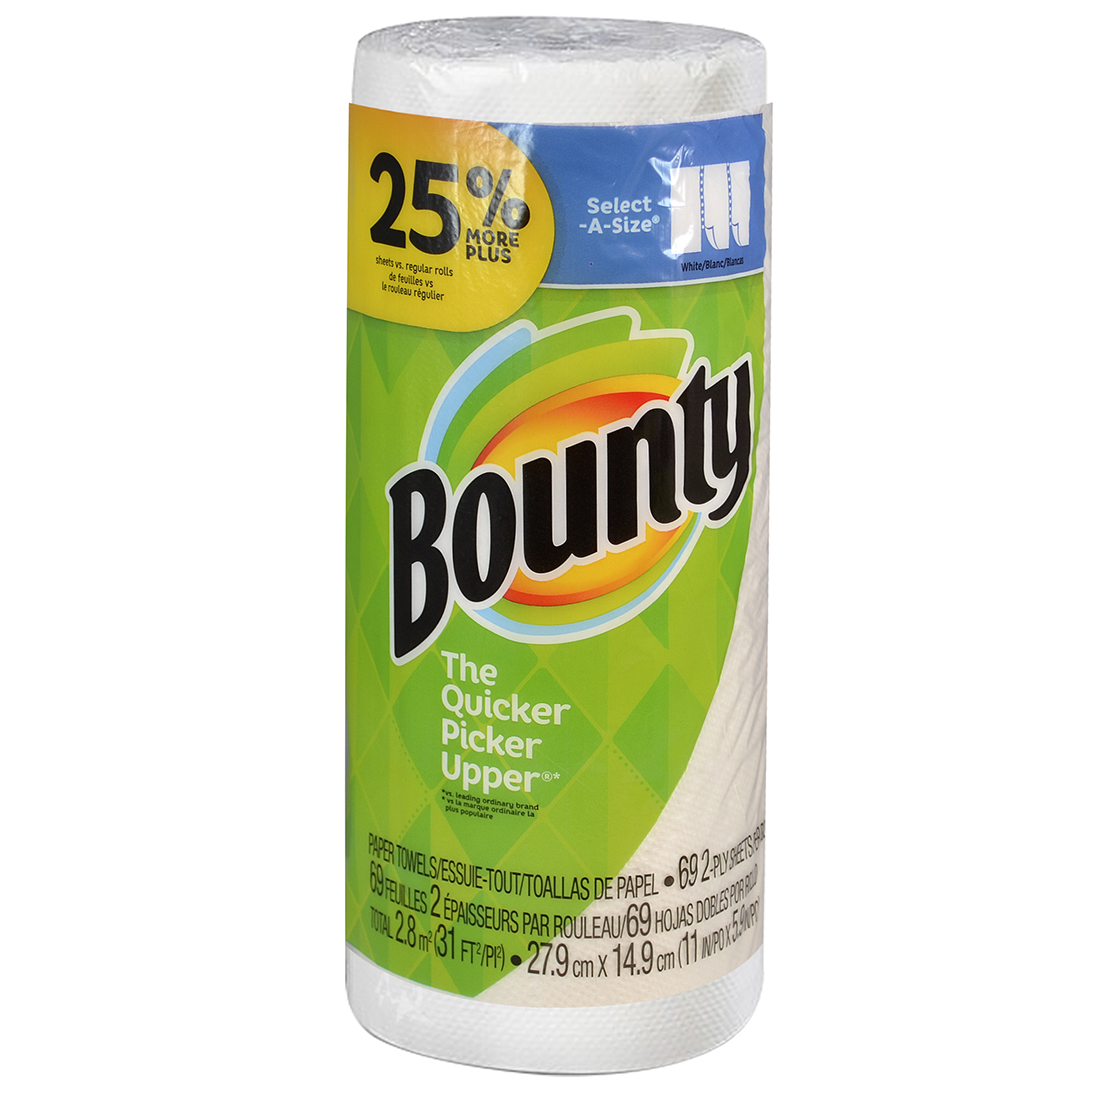 View BOUNTY PAPER TOWELS 79-2 PLY SHEETS SELECT-A-SIZE LARGE ROLL INDIVIDUALLY WRAPPED ** LIMIT 20*